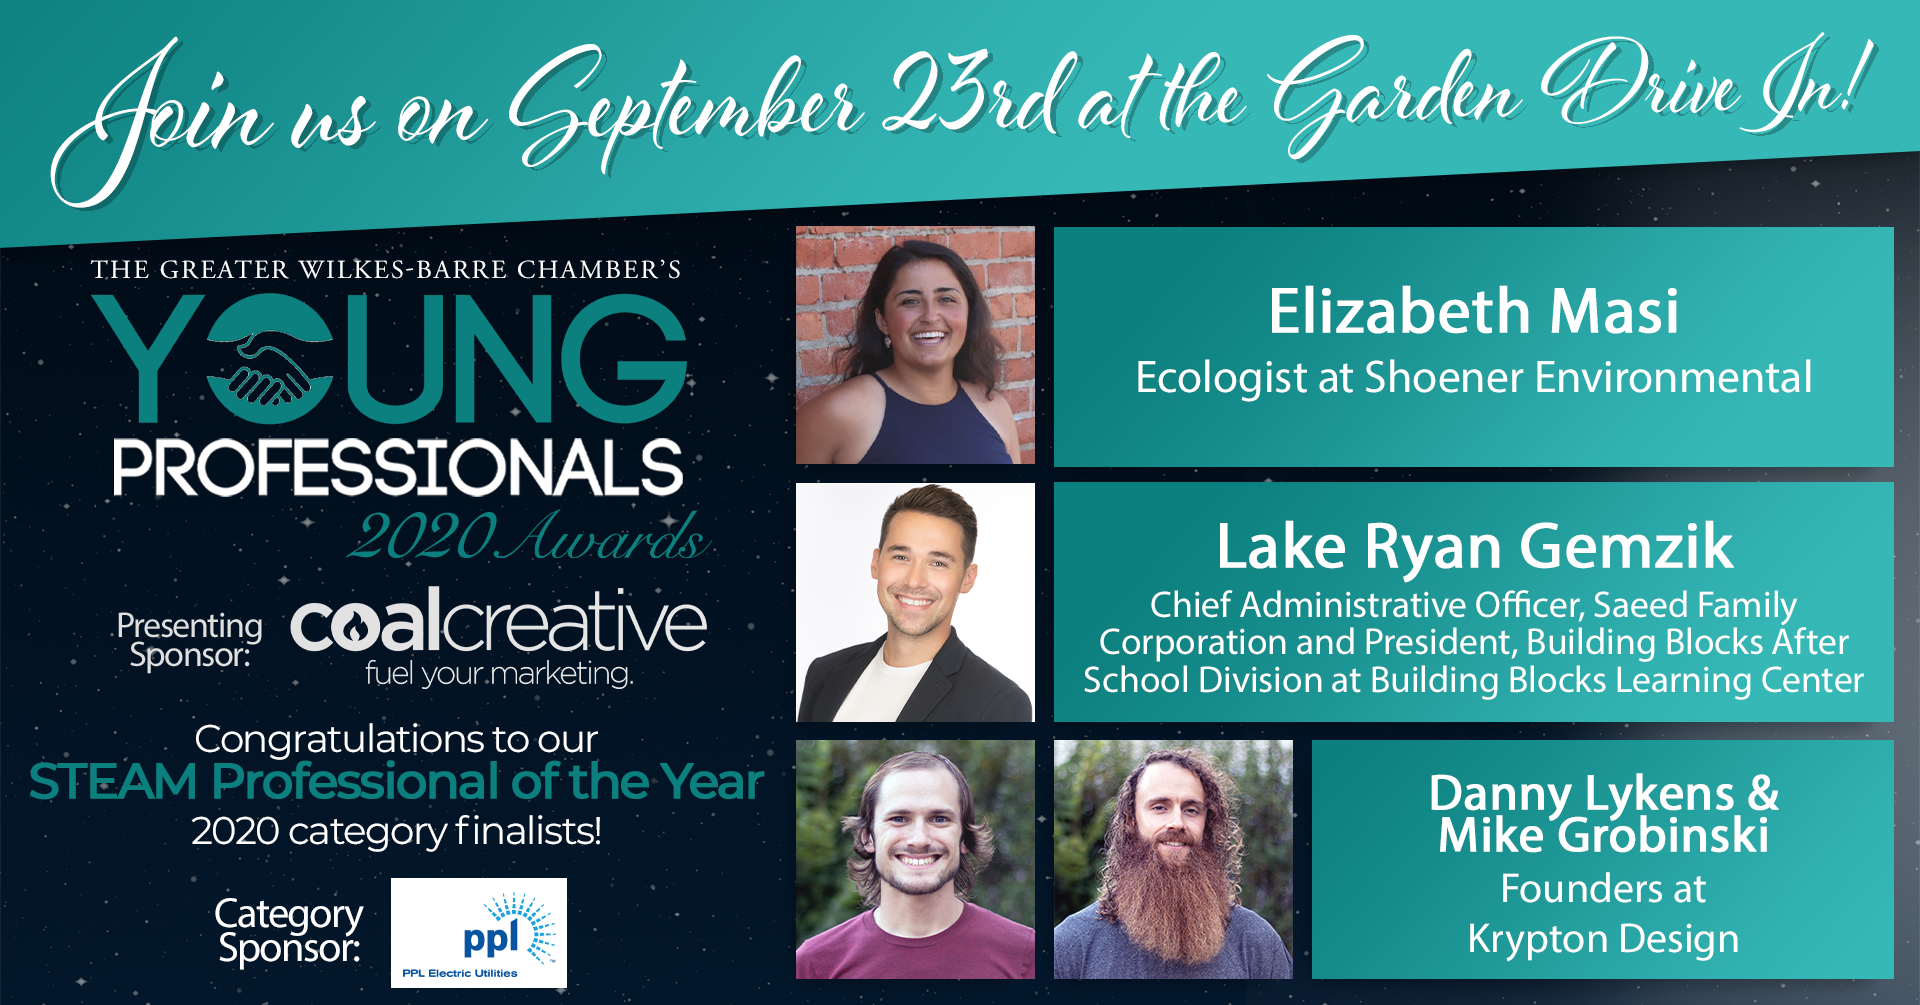 Image for Meet the 2020 Young Professionals Category Finalists for STEAM Professional of the Year!